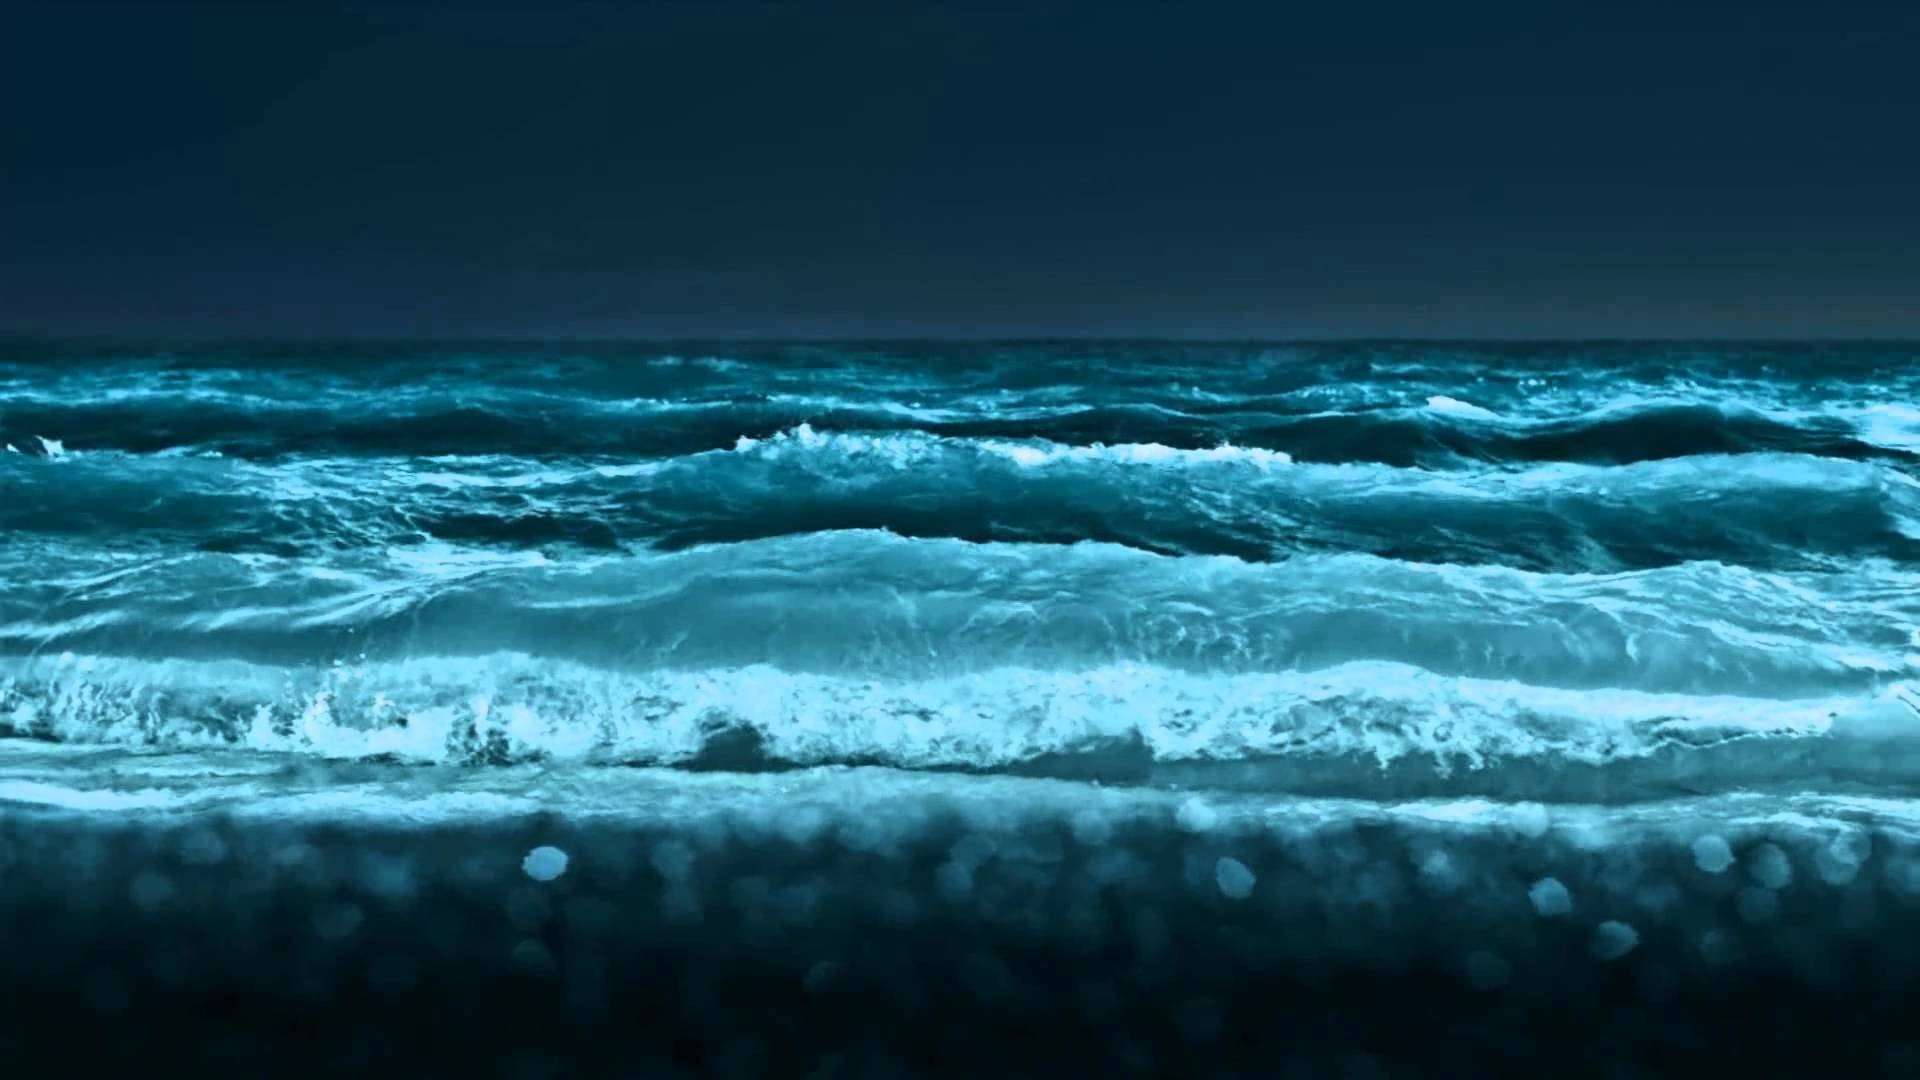 1920x1080 Ocean Waves Animated Wallpaper http://www.desktopanimated.com